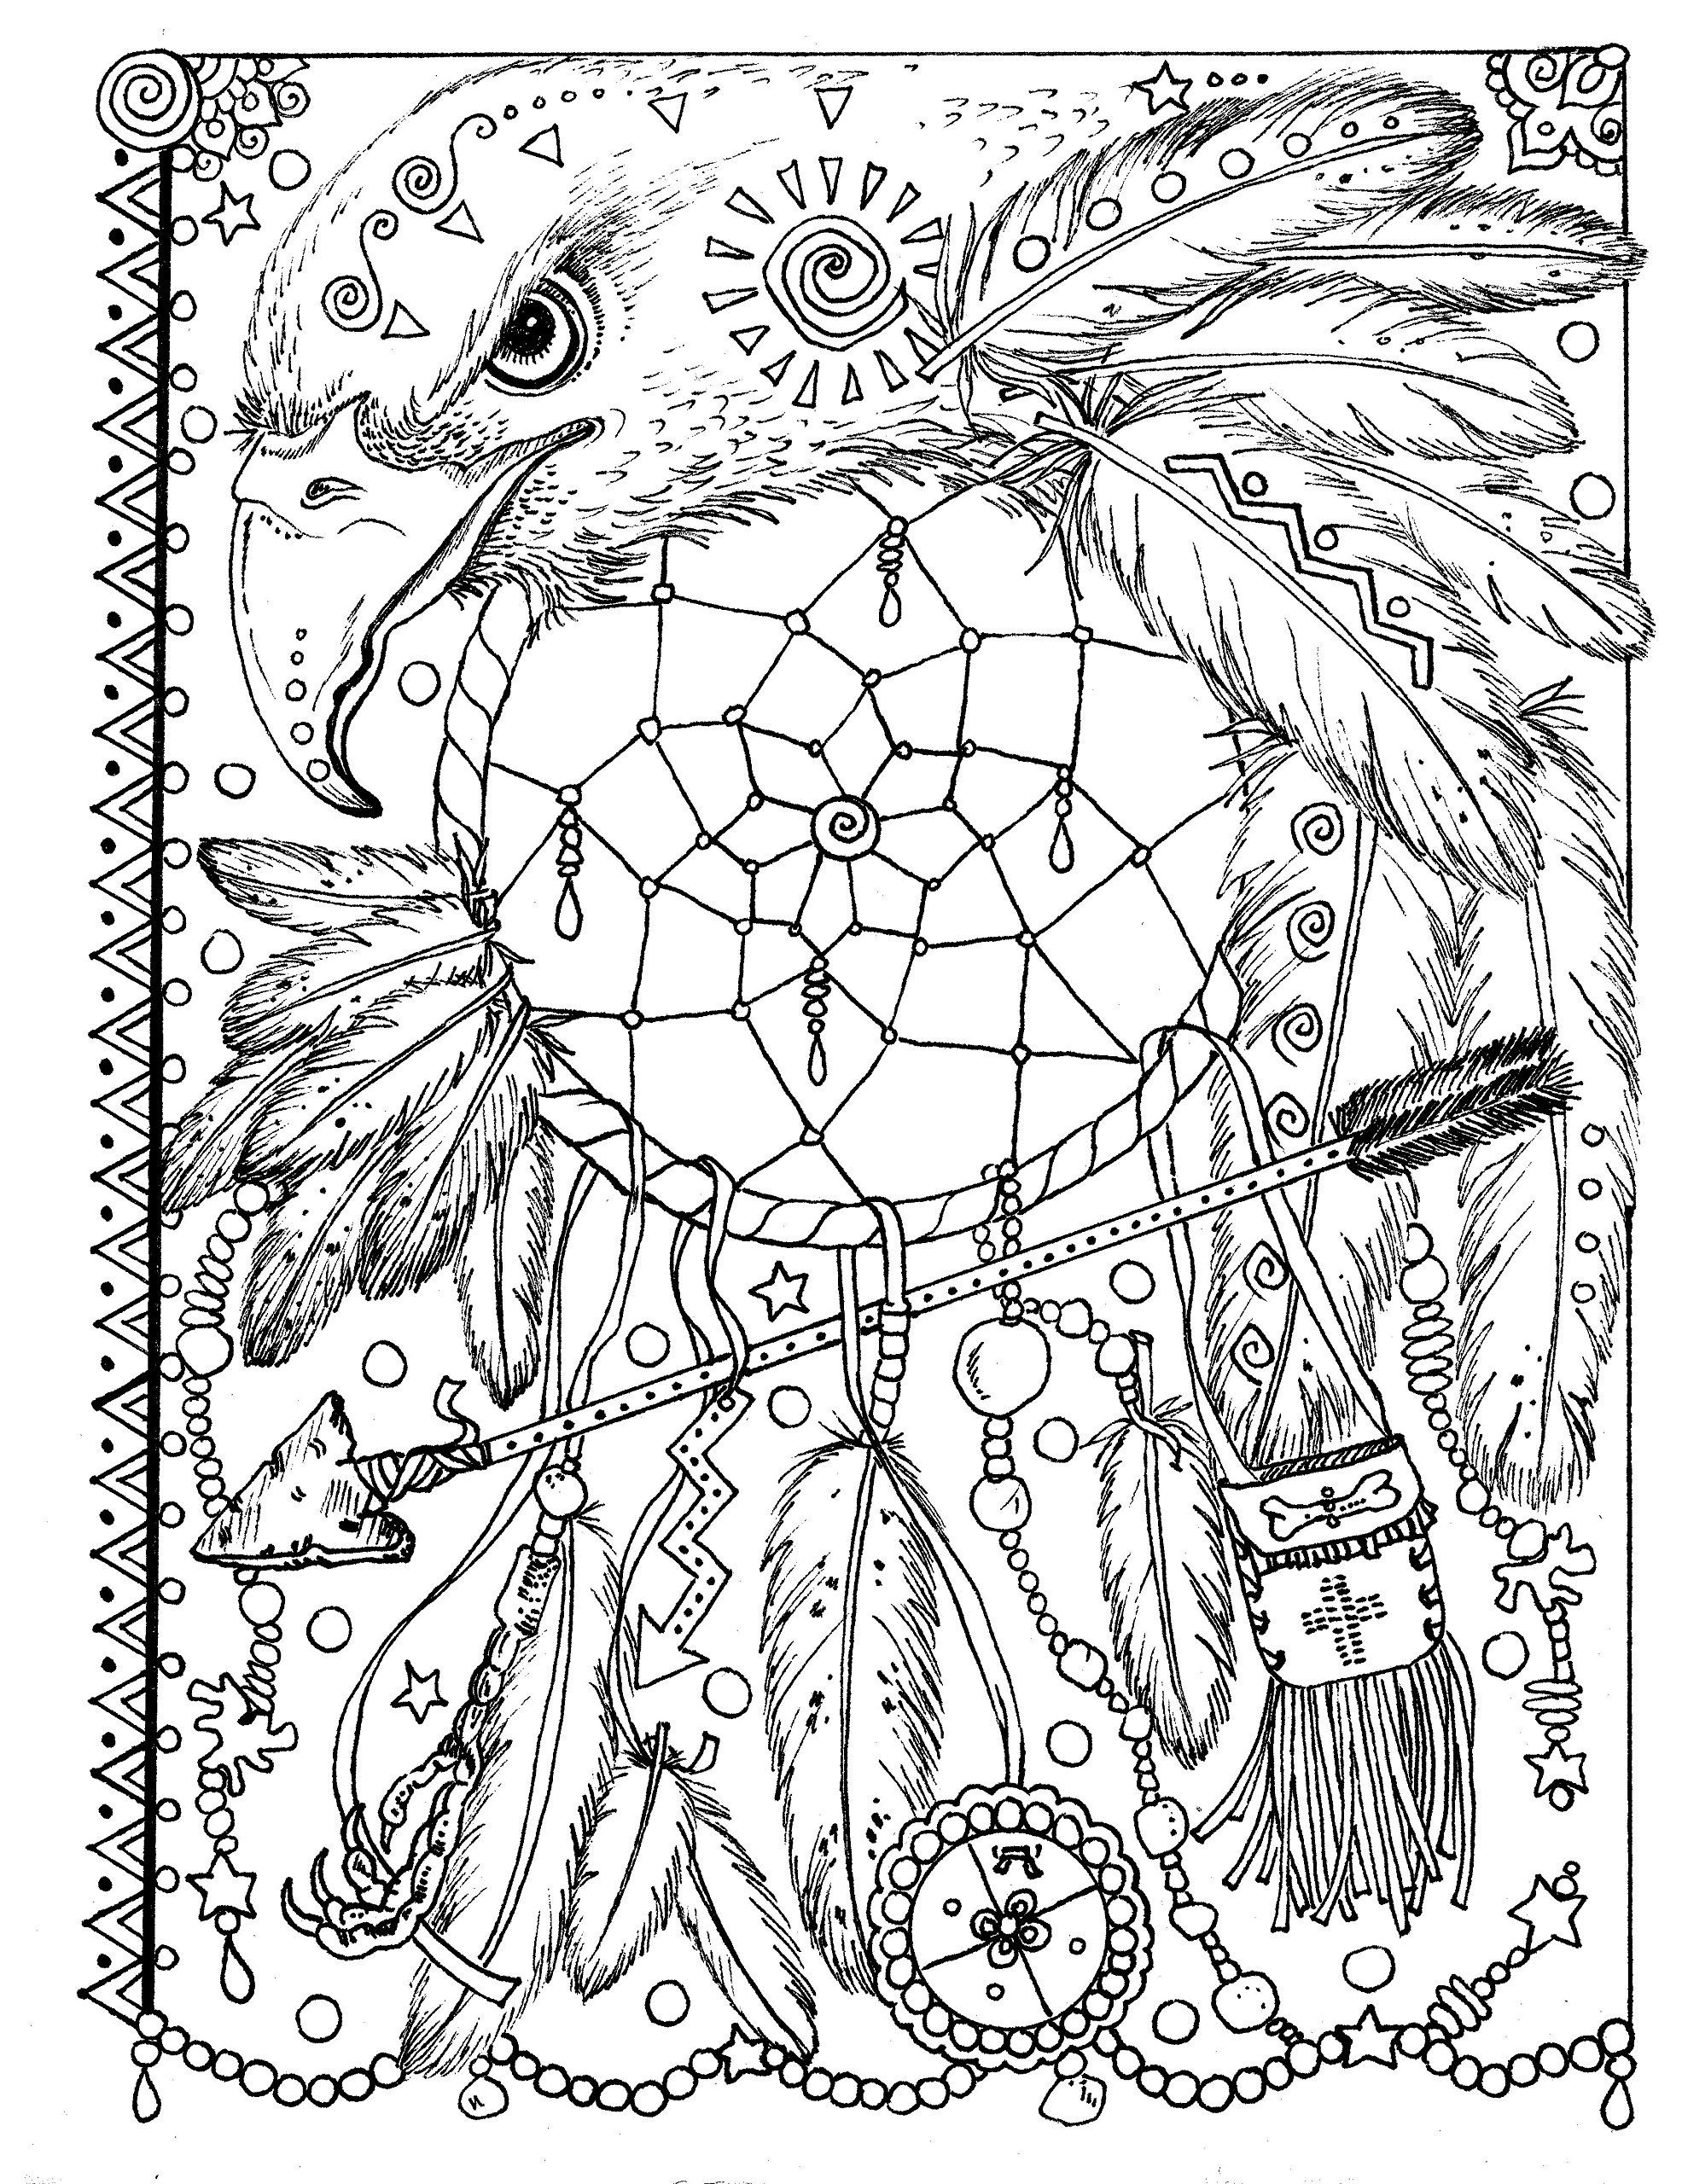 Animal Spirit Dreamcatchers Coloring Fun For All Ages Deborah Muller 0641243892559 Amazon Books